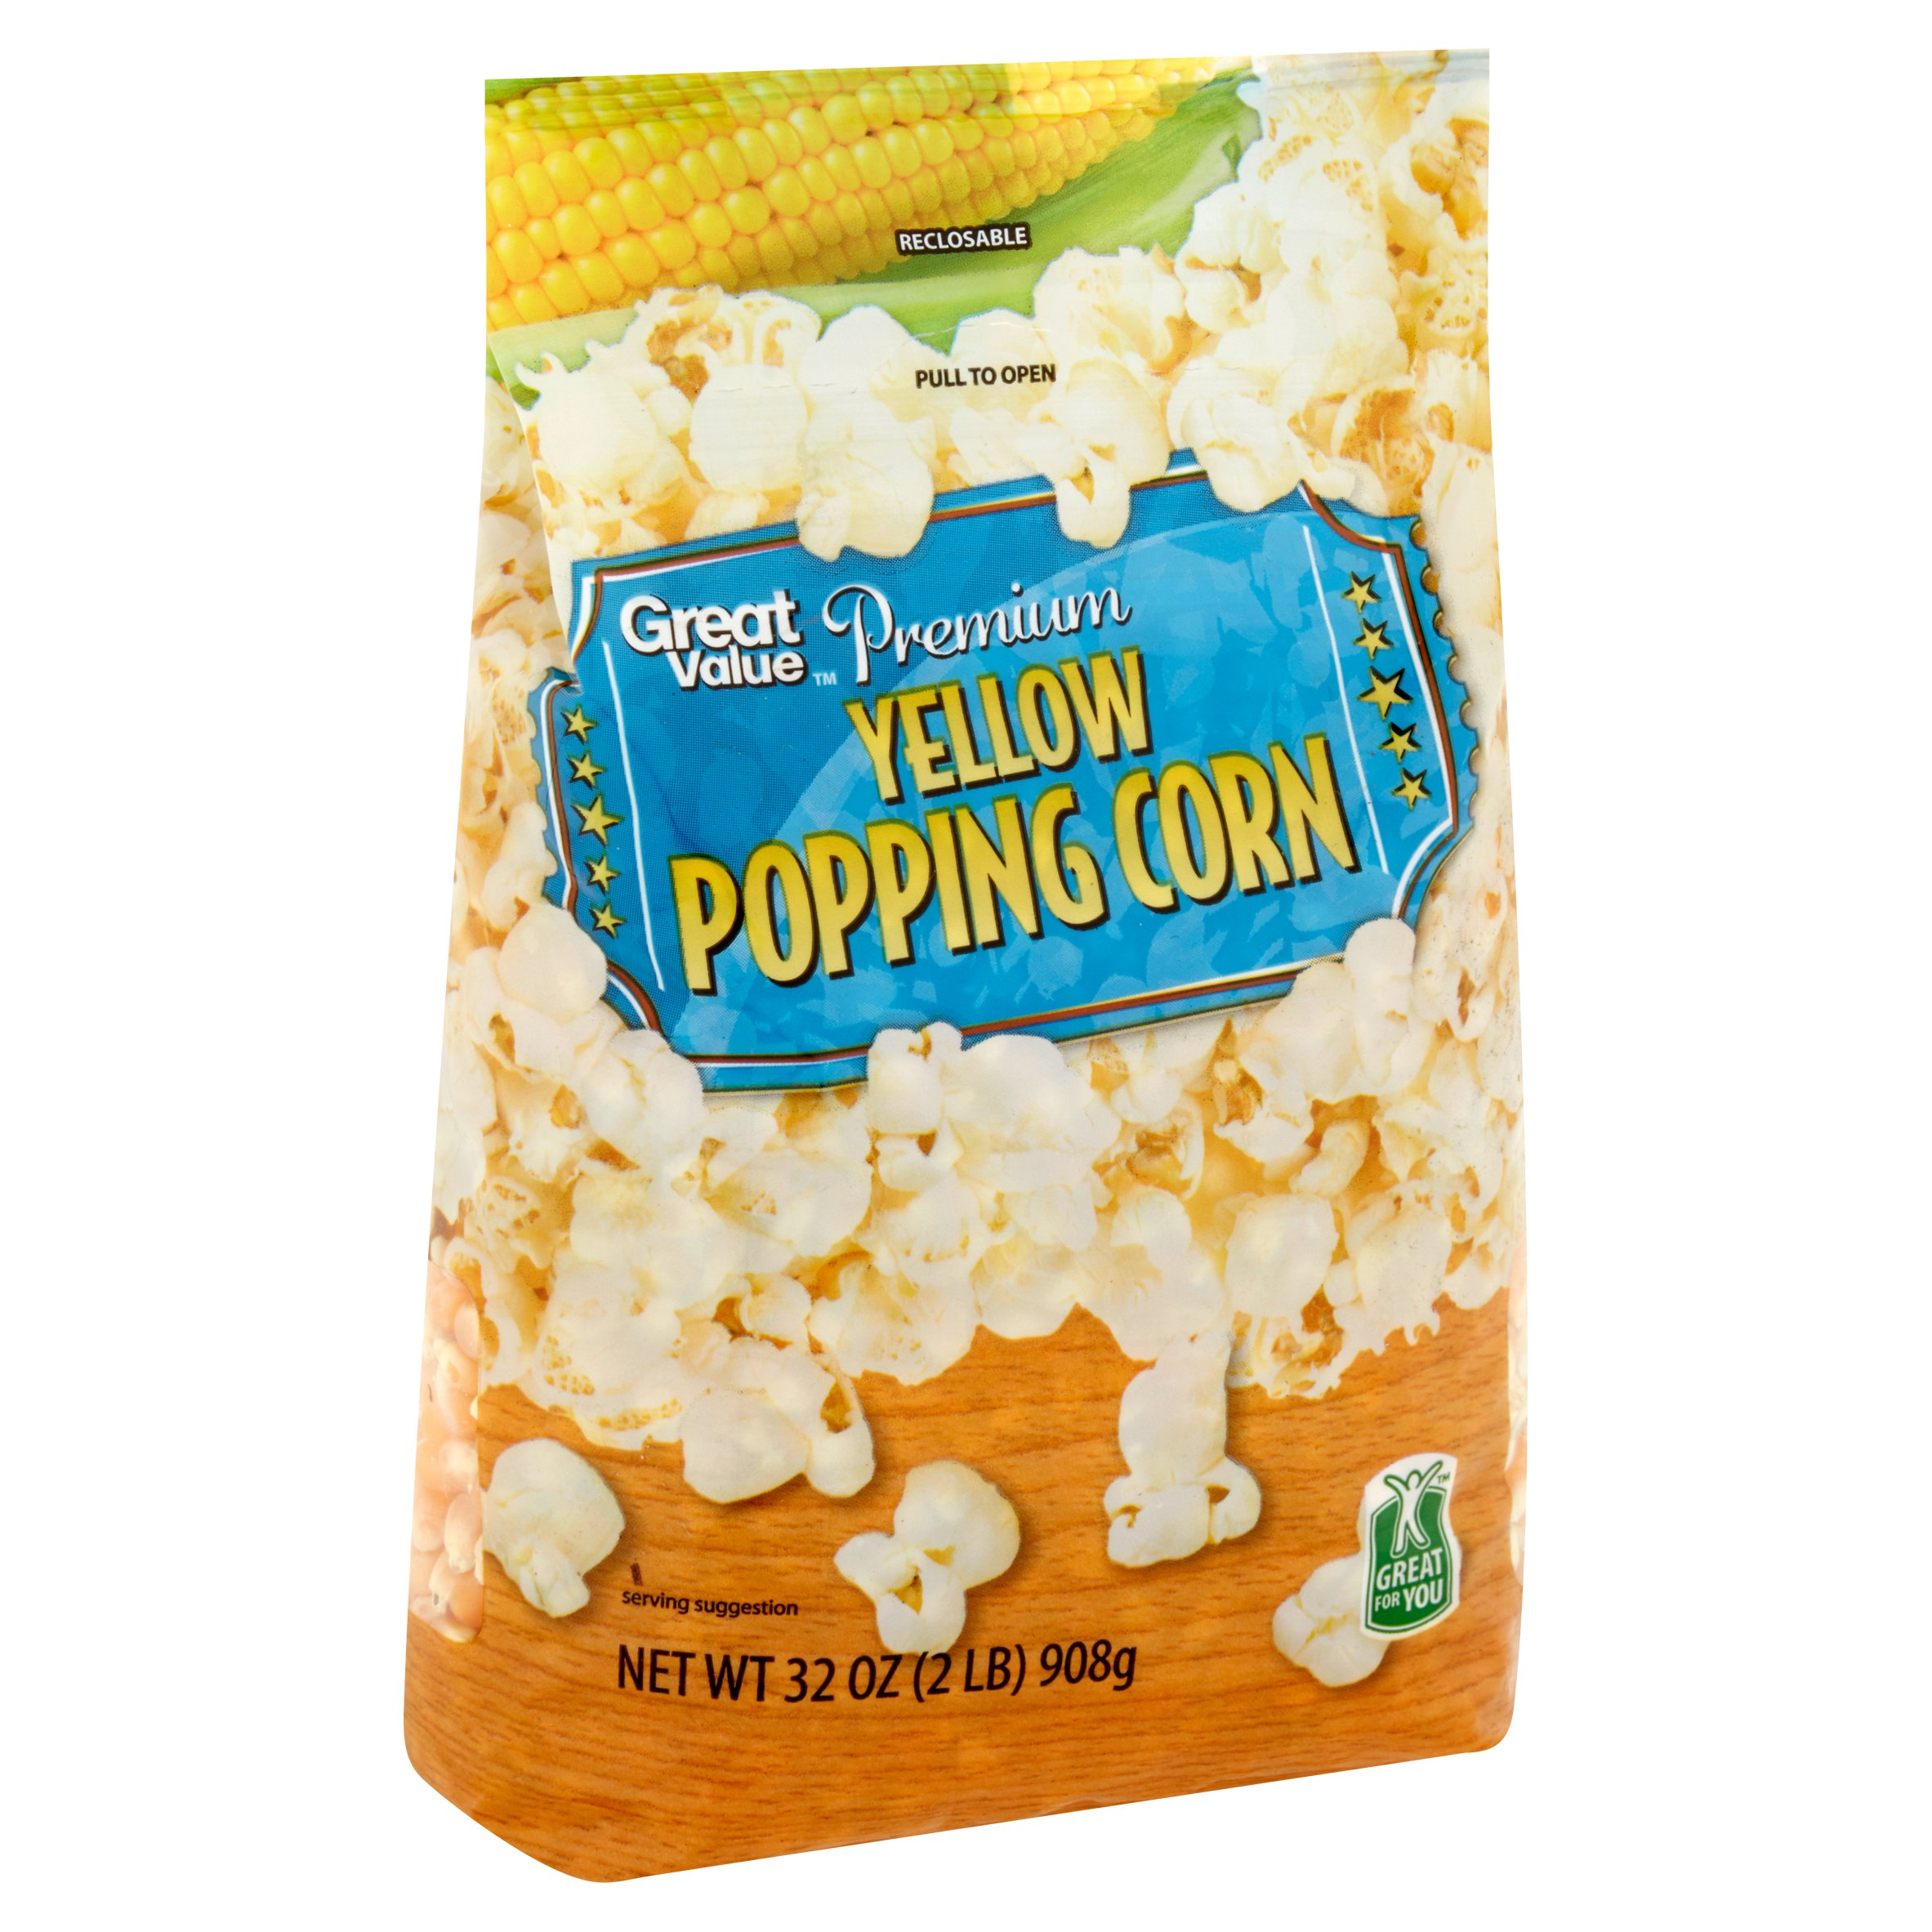 popcorn research paper Related post of popcorn research paper turkey critical thinking leadership kaplan reference for research paper quotes or italics research paper on same sex marriage .